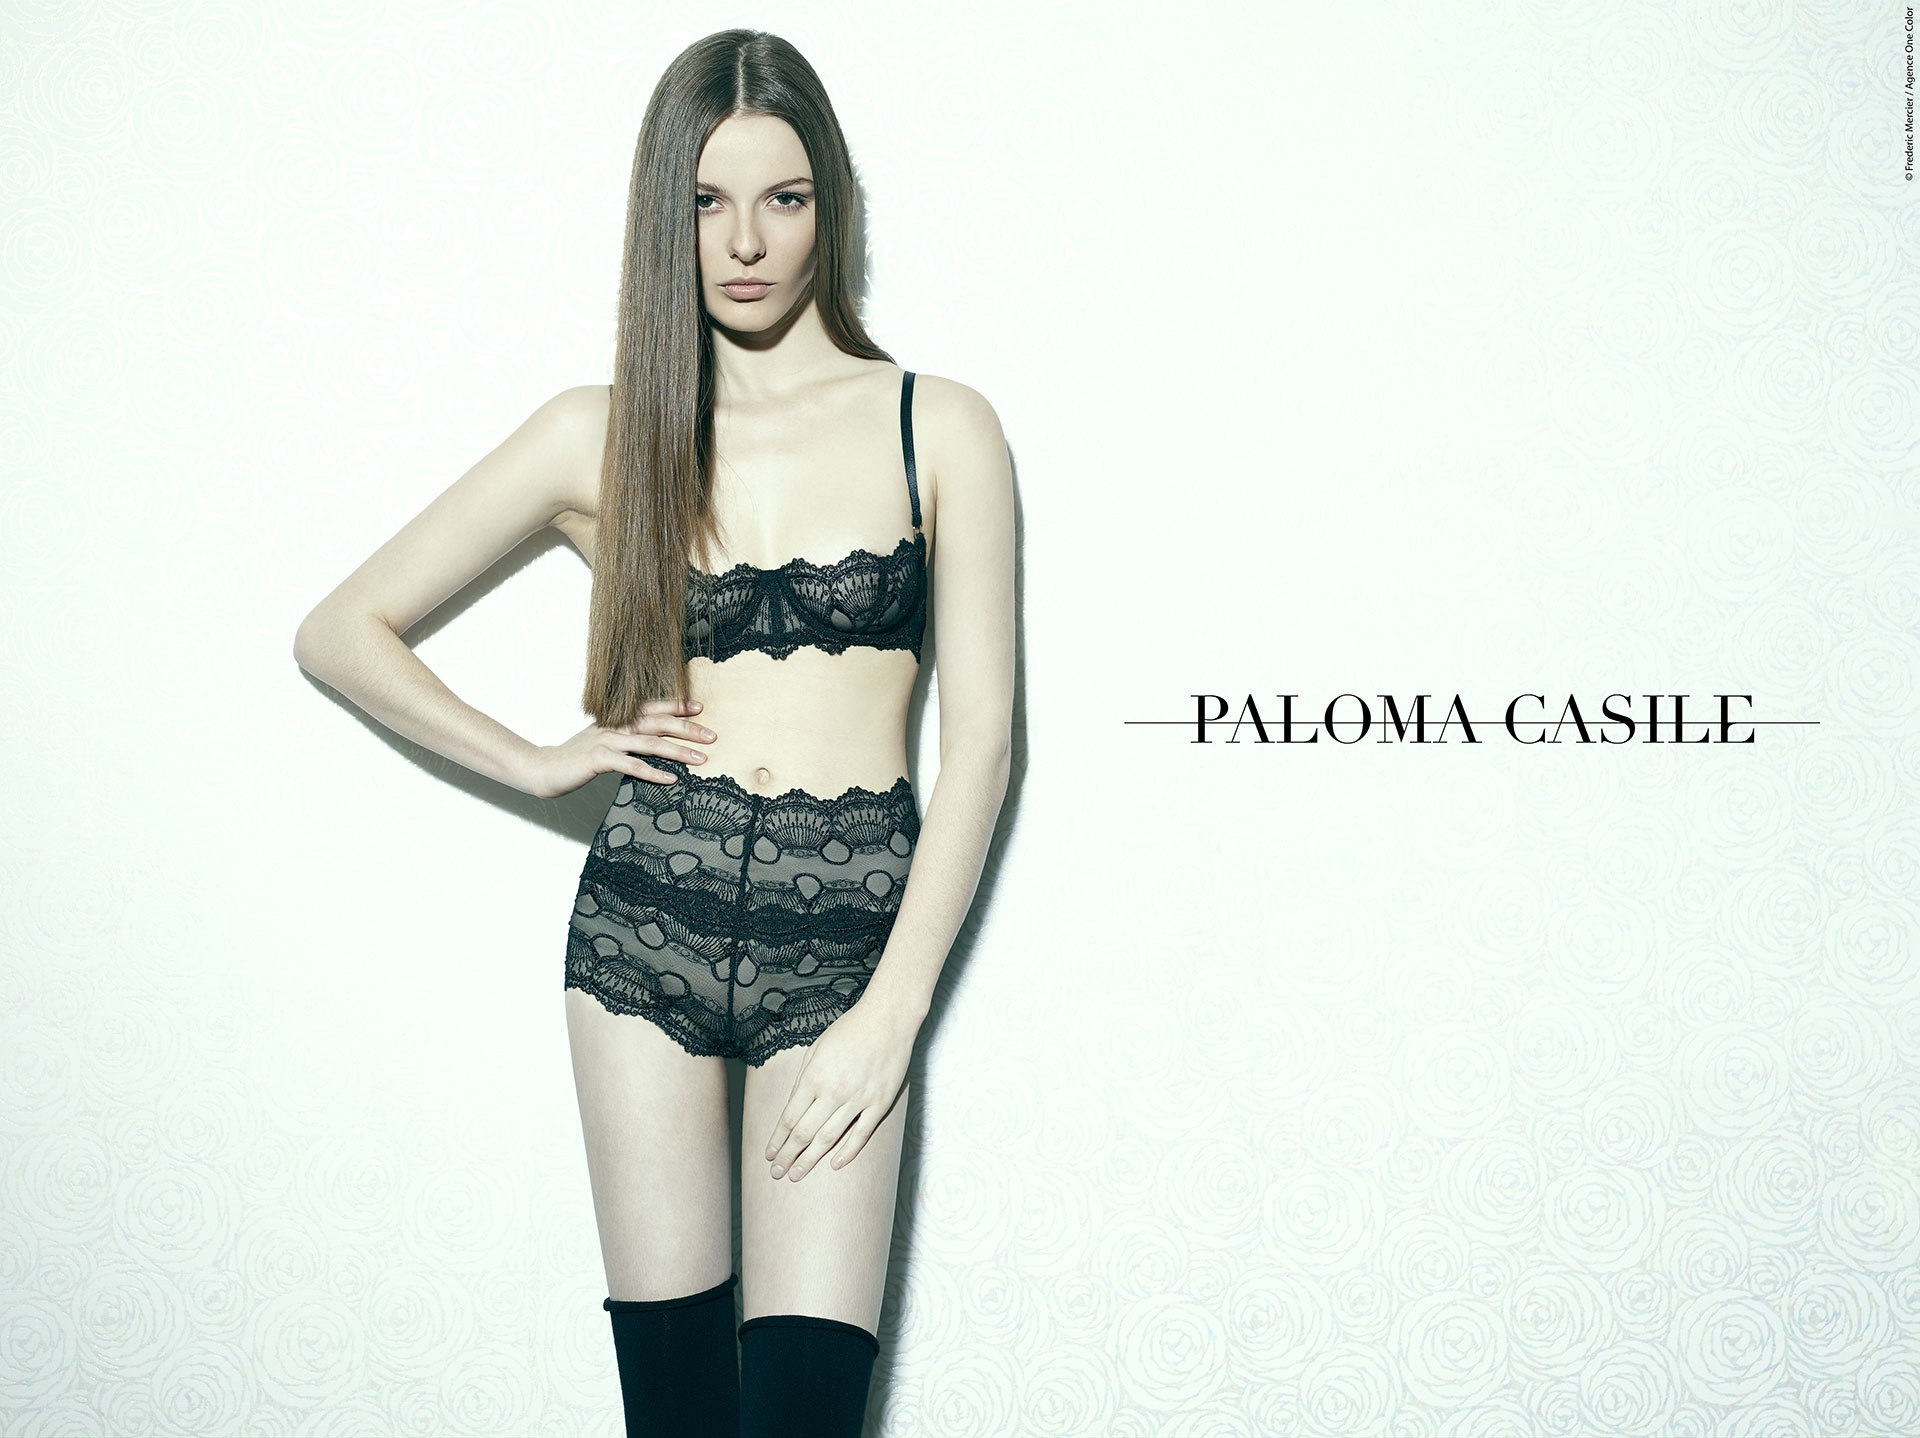 paloma casile aw 2014 campaign lingerie underwear frederic mercier fashion photographer one color